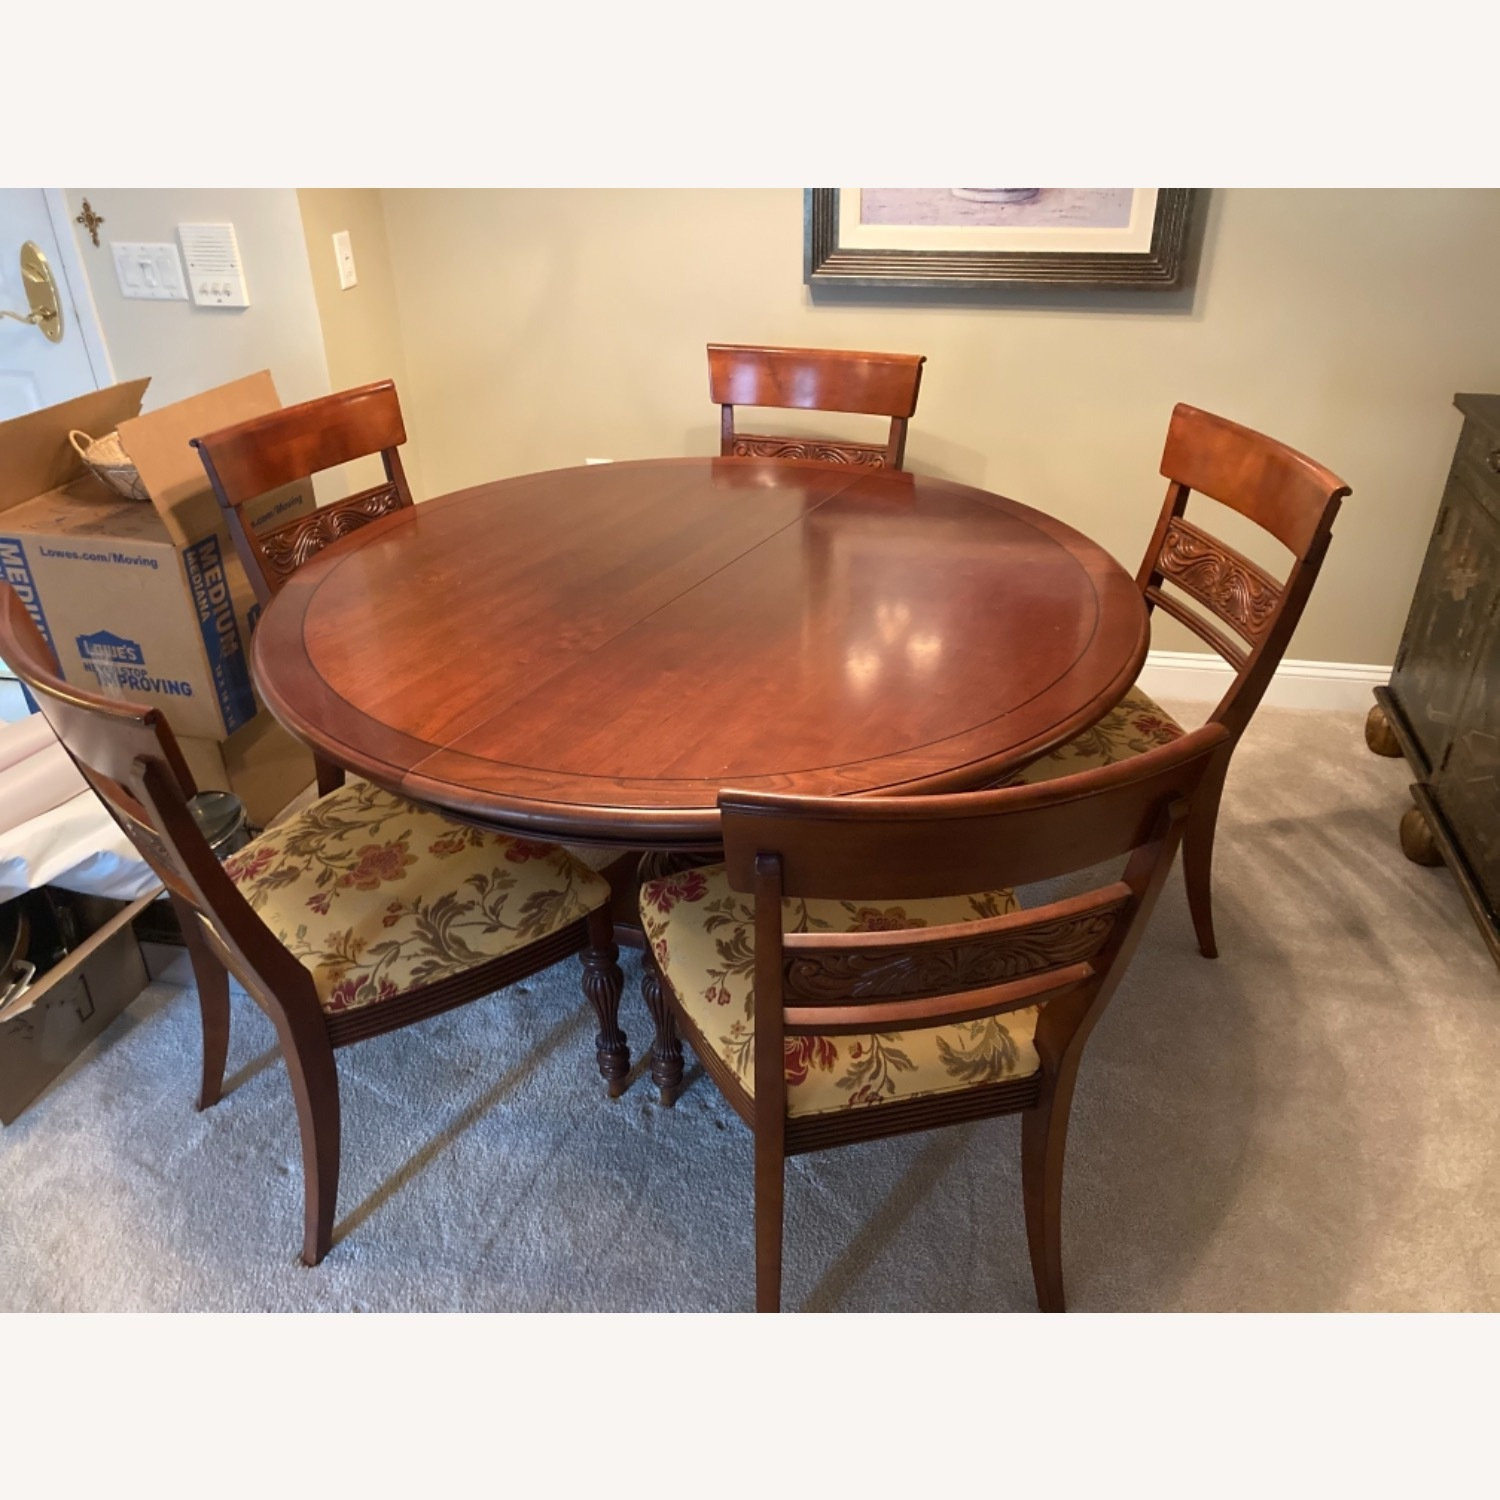 Ethan Allen Dining Room Table With 5 Chairs - image-1